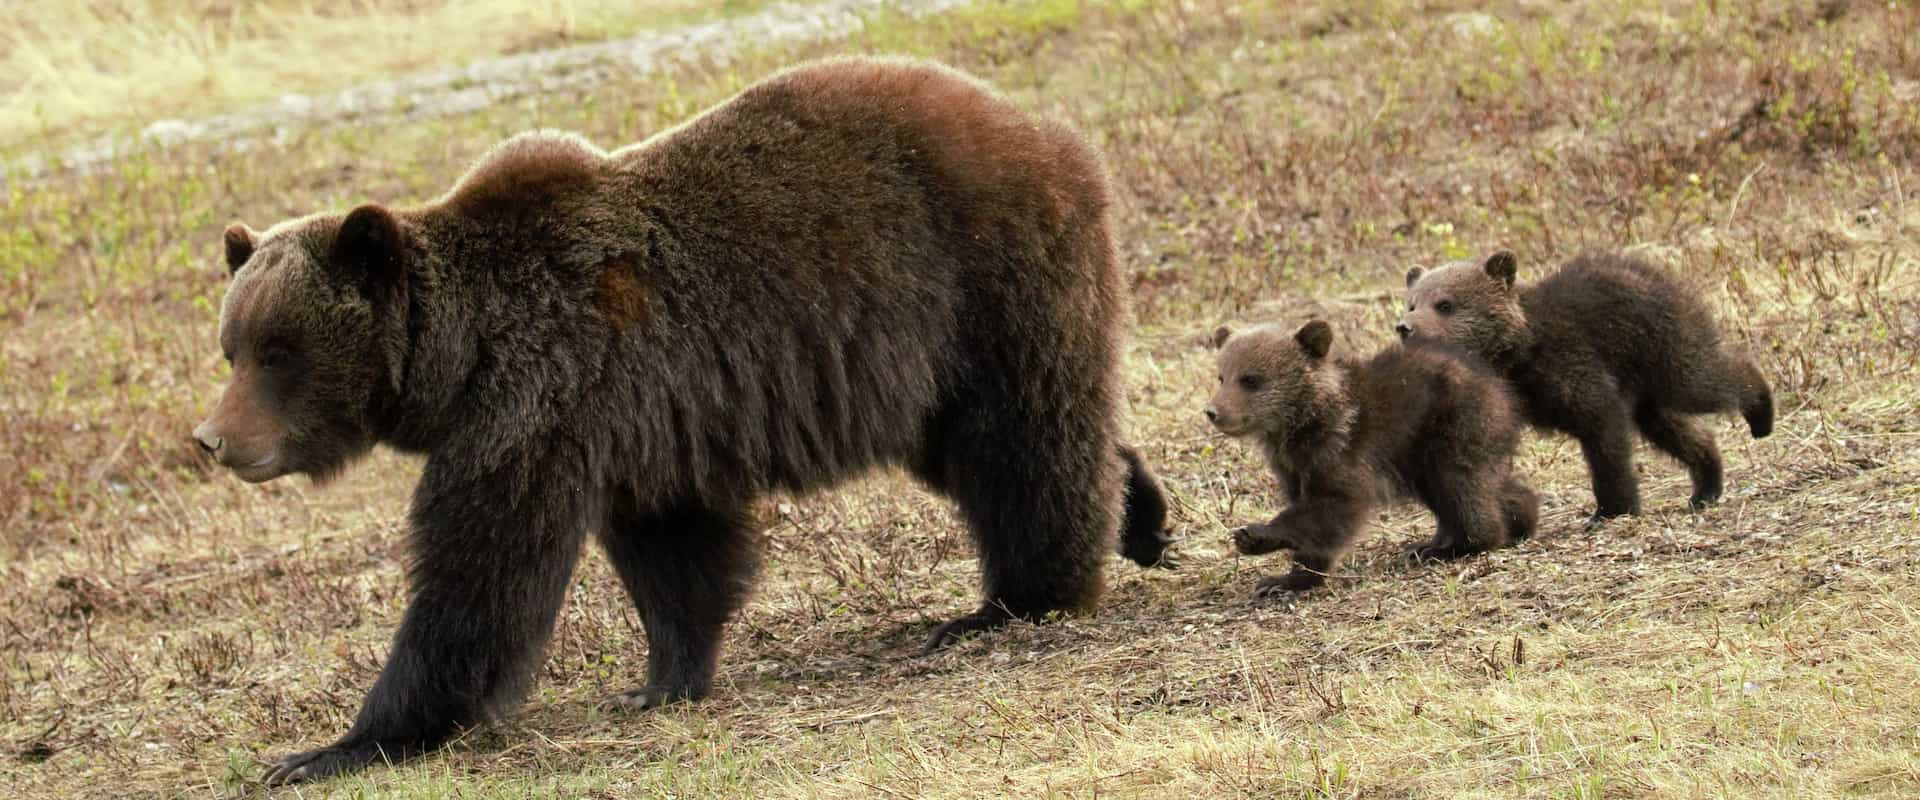 See grizzly bears and wildlife in the Canadian Rockies